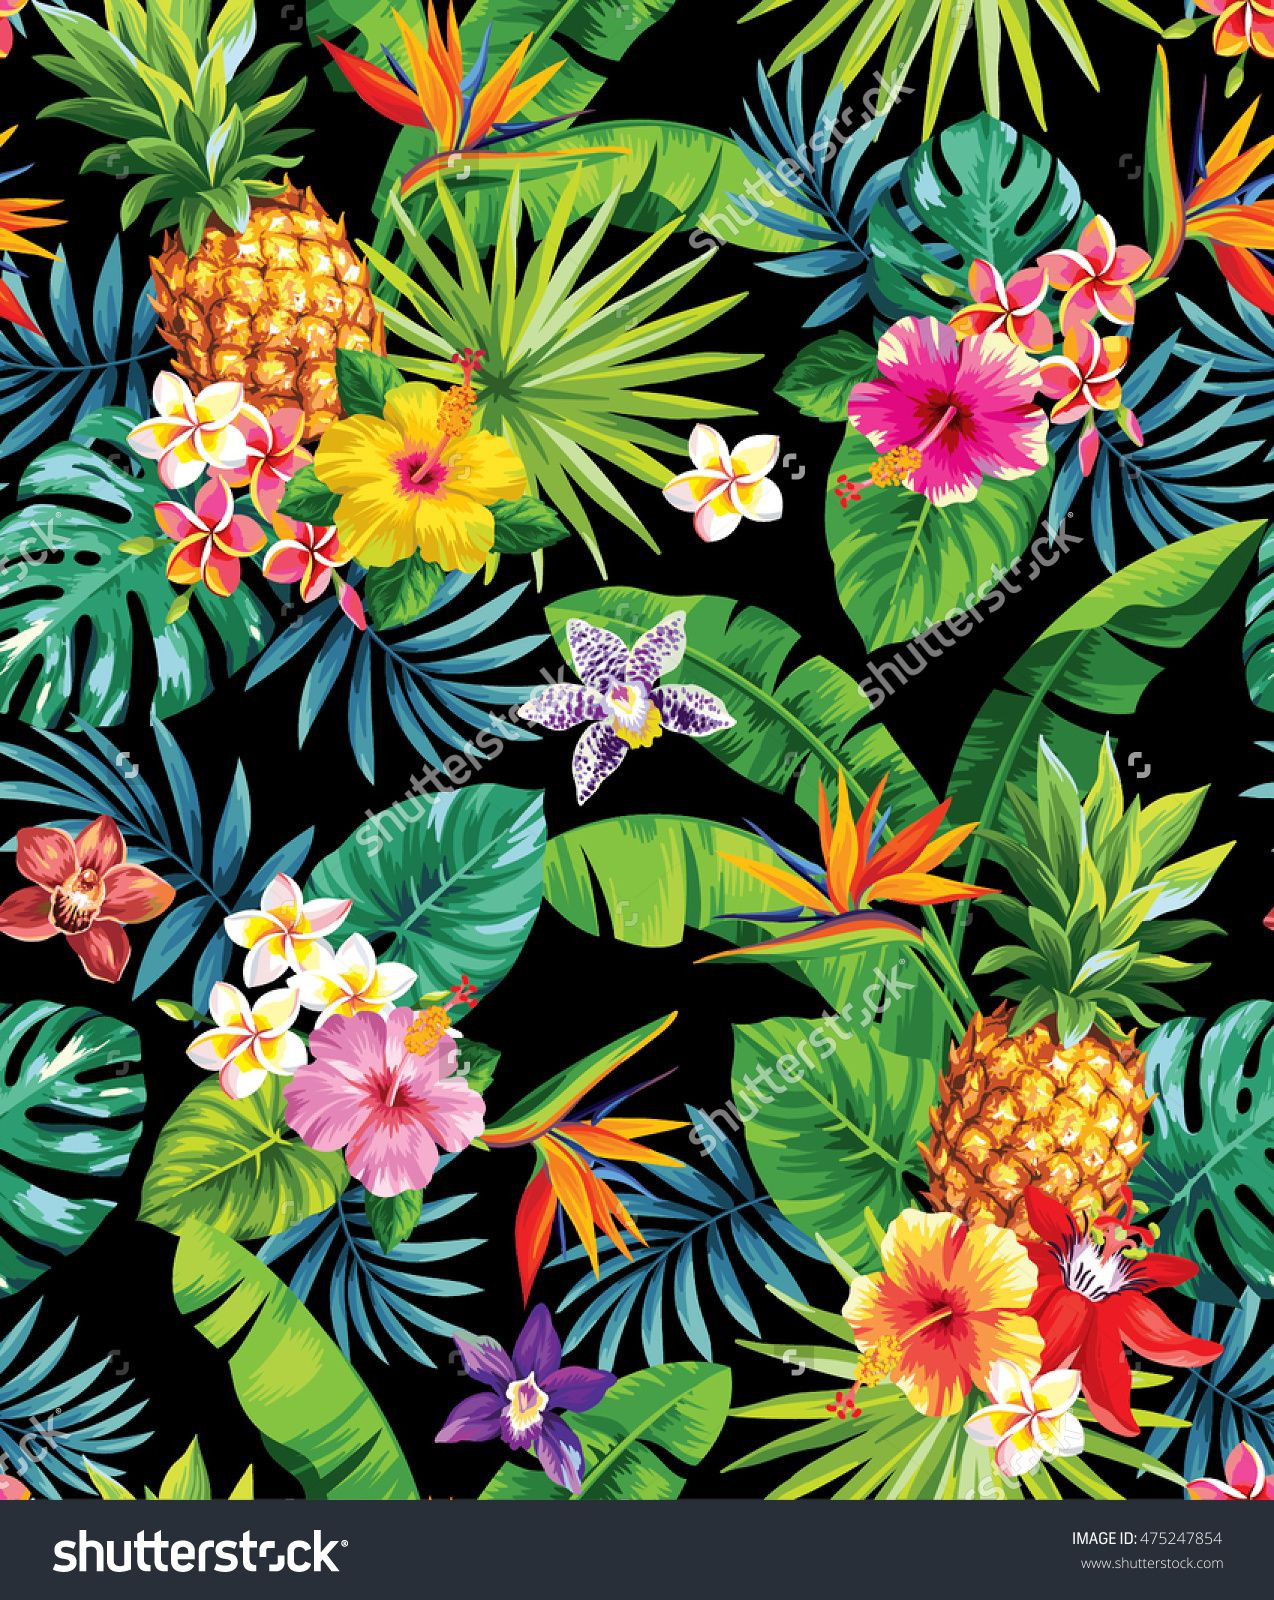 Seamless tropical pattern with pineapples palm leaves and flowers Vector illustration